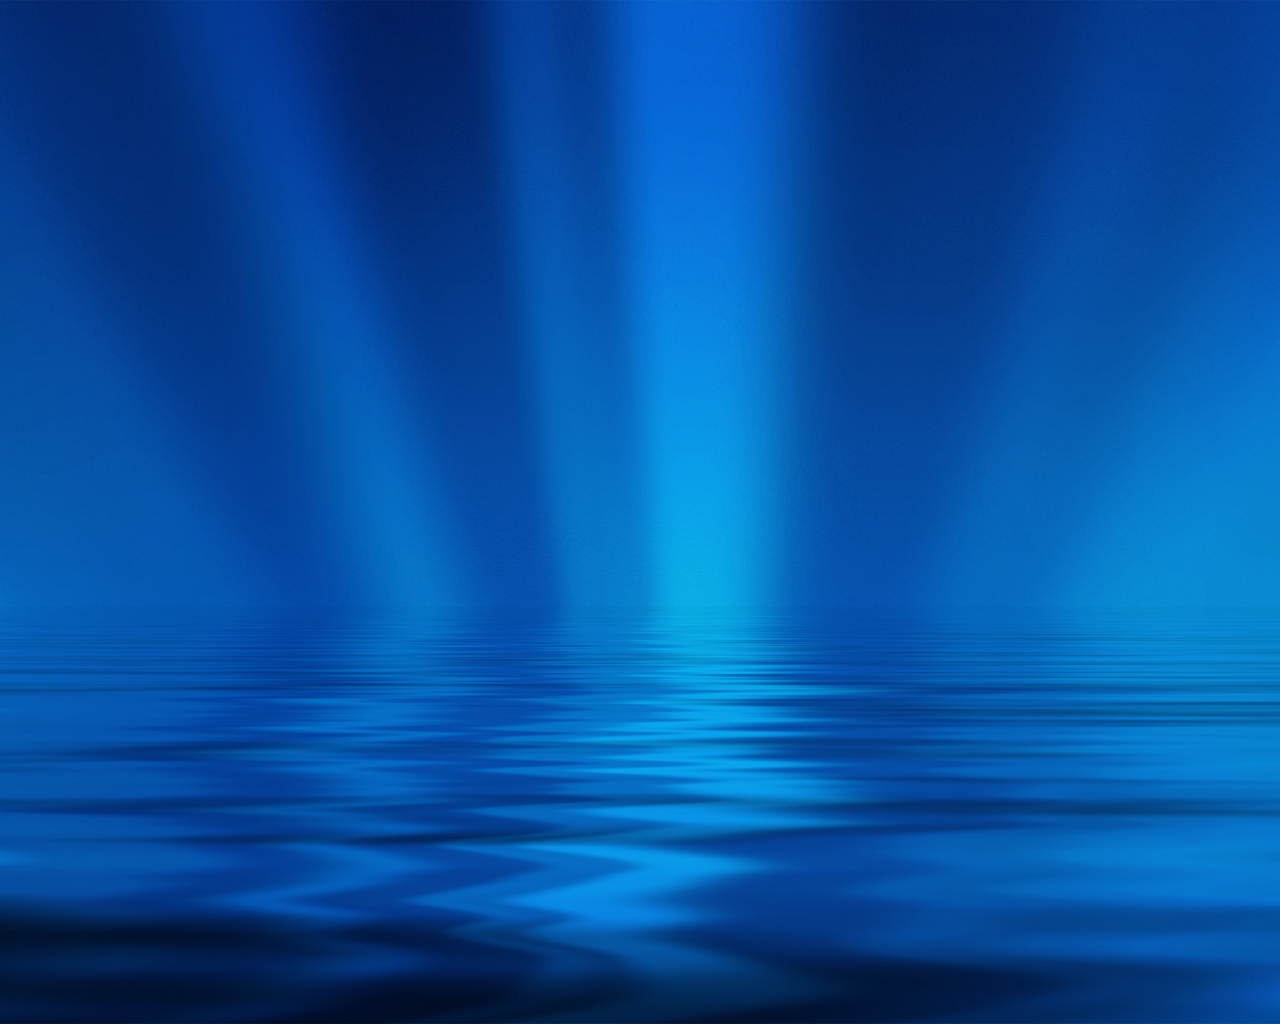 Only Blue Wallpapers